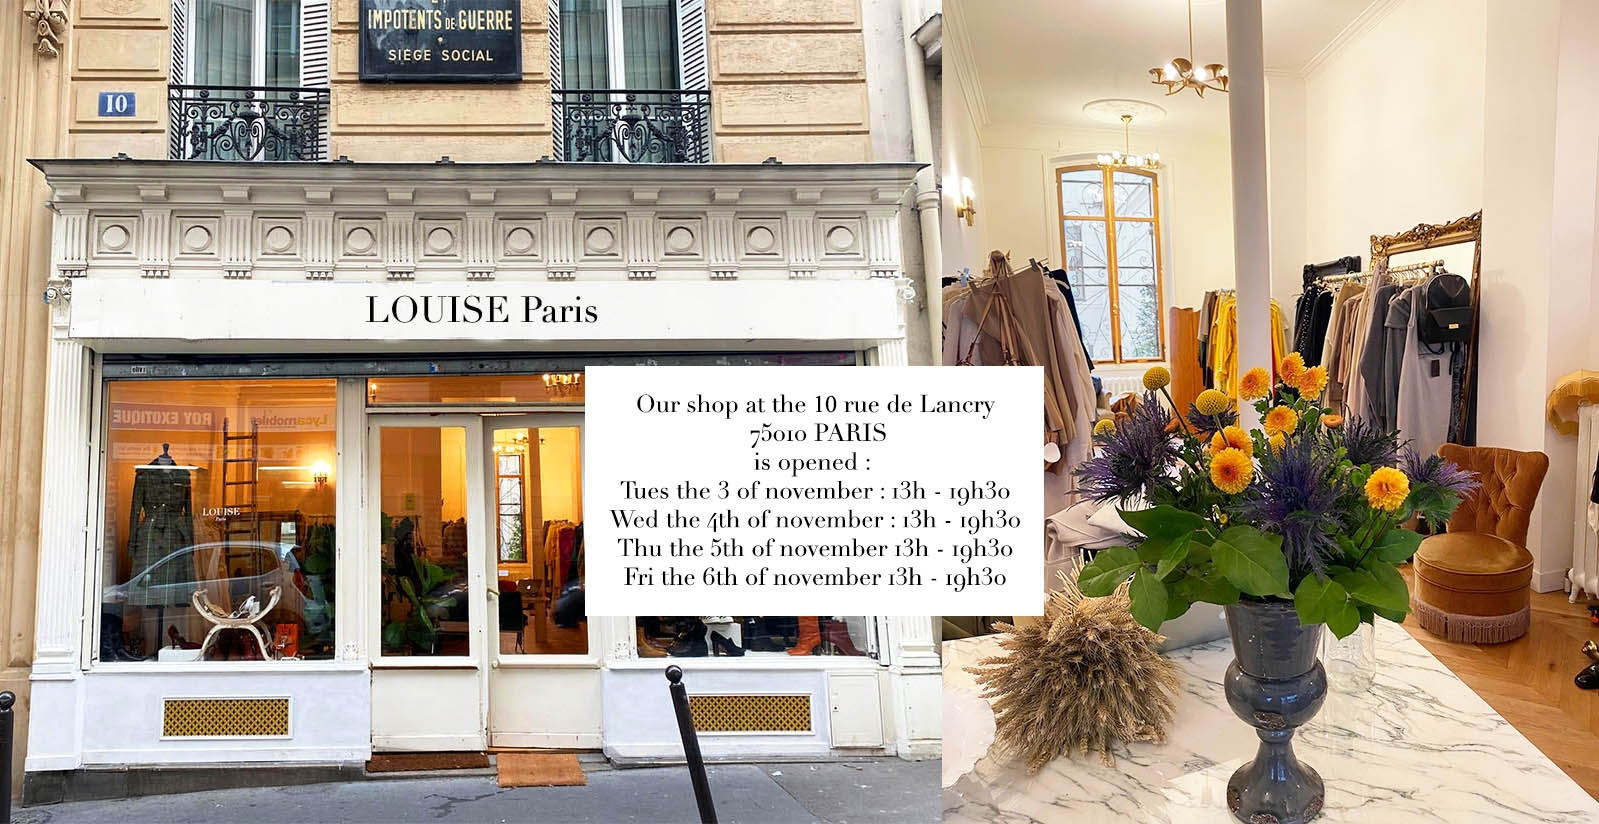 opening hours of our shop at the 10 rue de lancry 75010 Paris